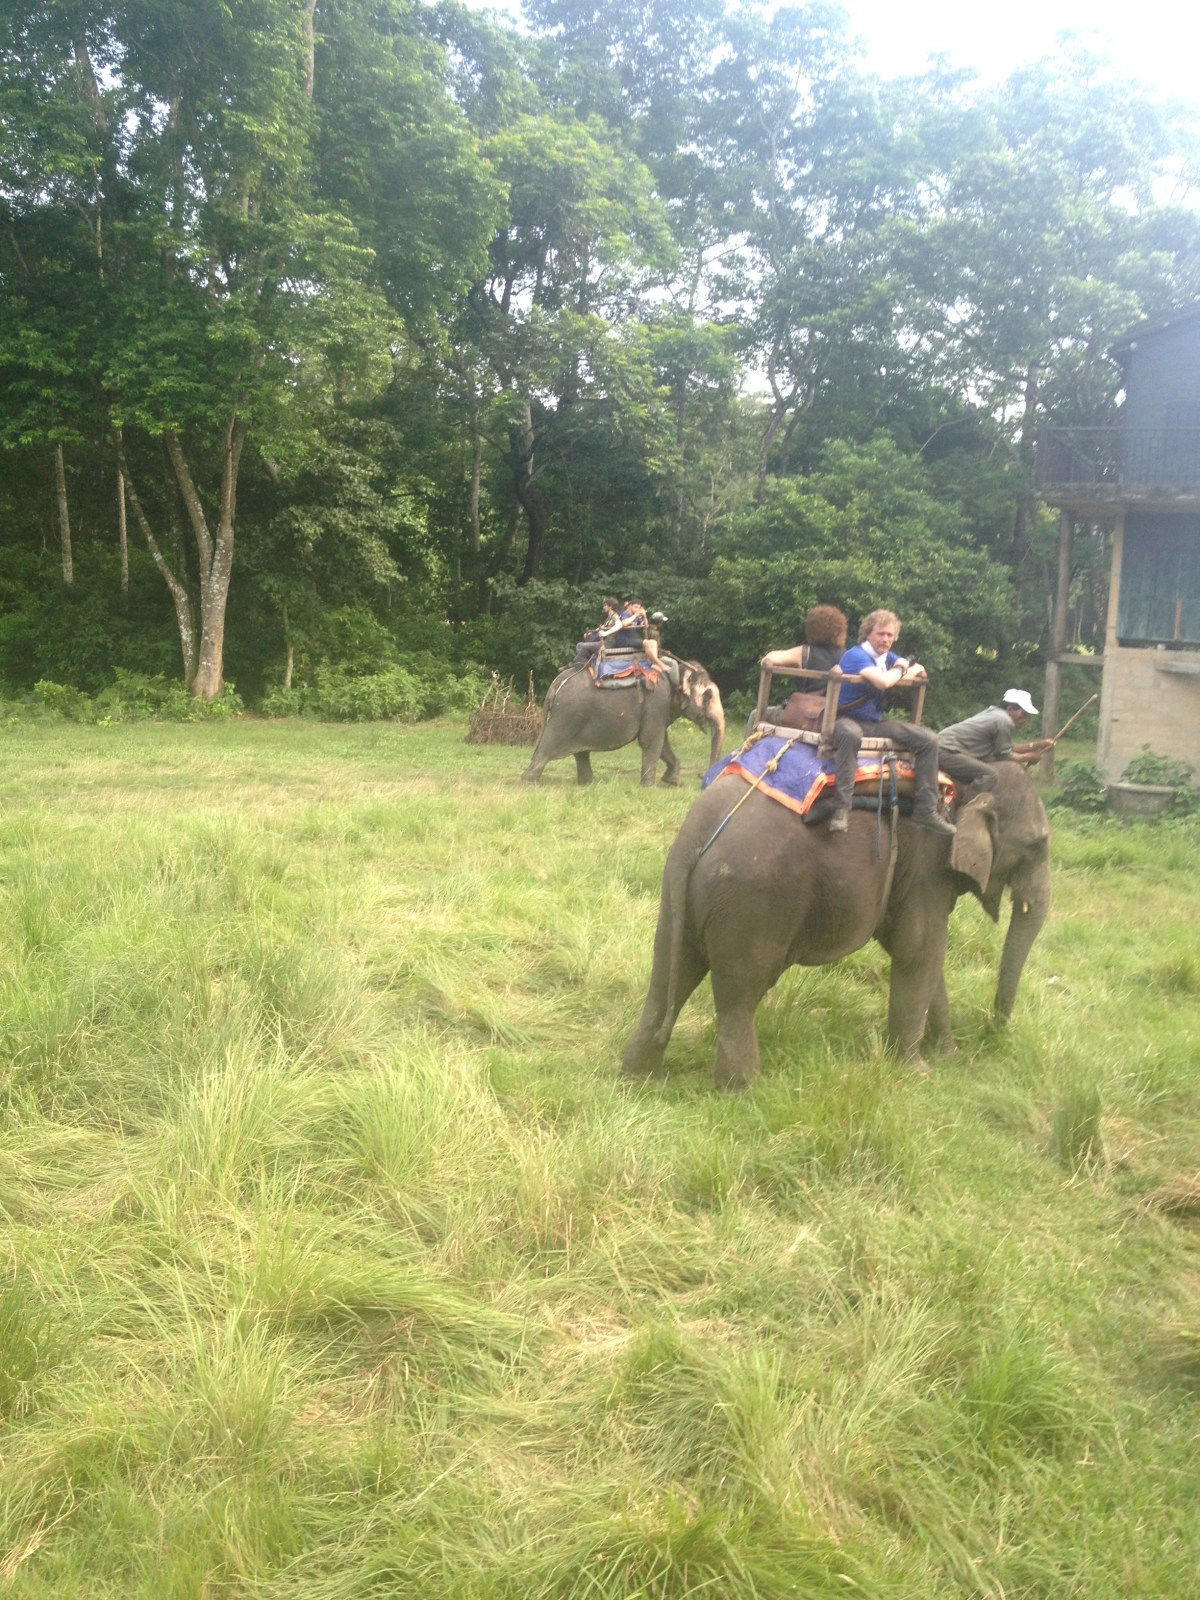 Chitwan National Park Safari: Riding Elephants